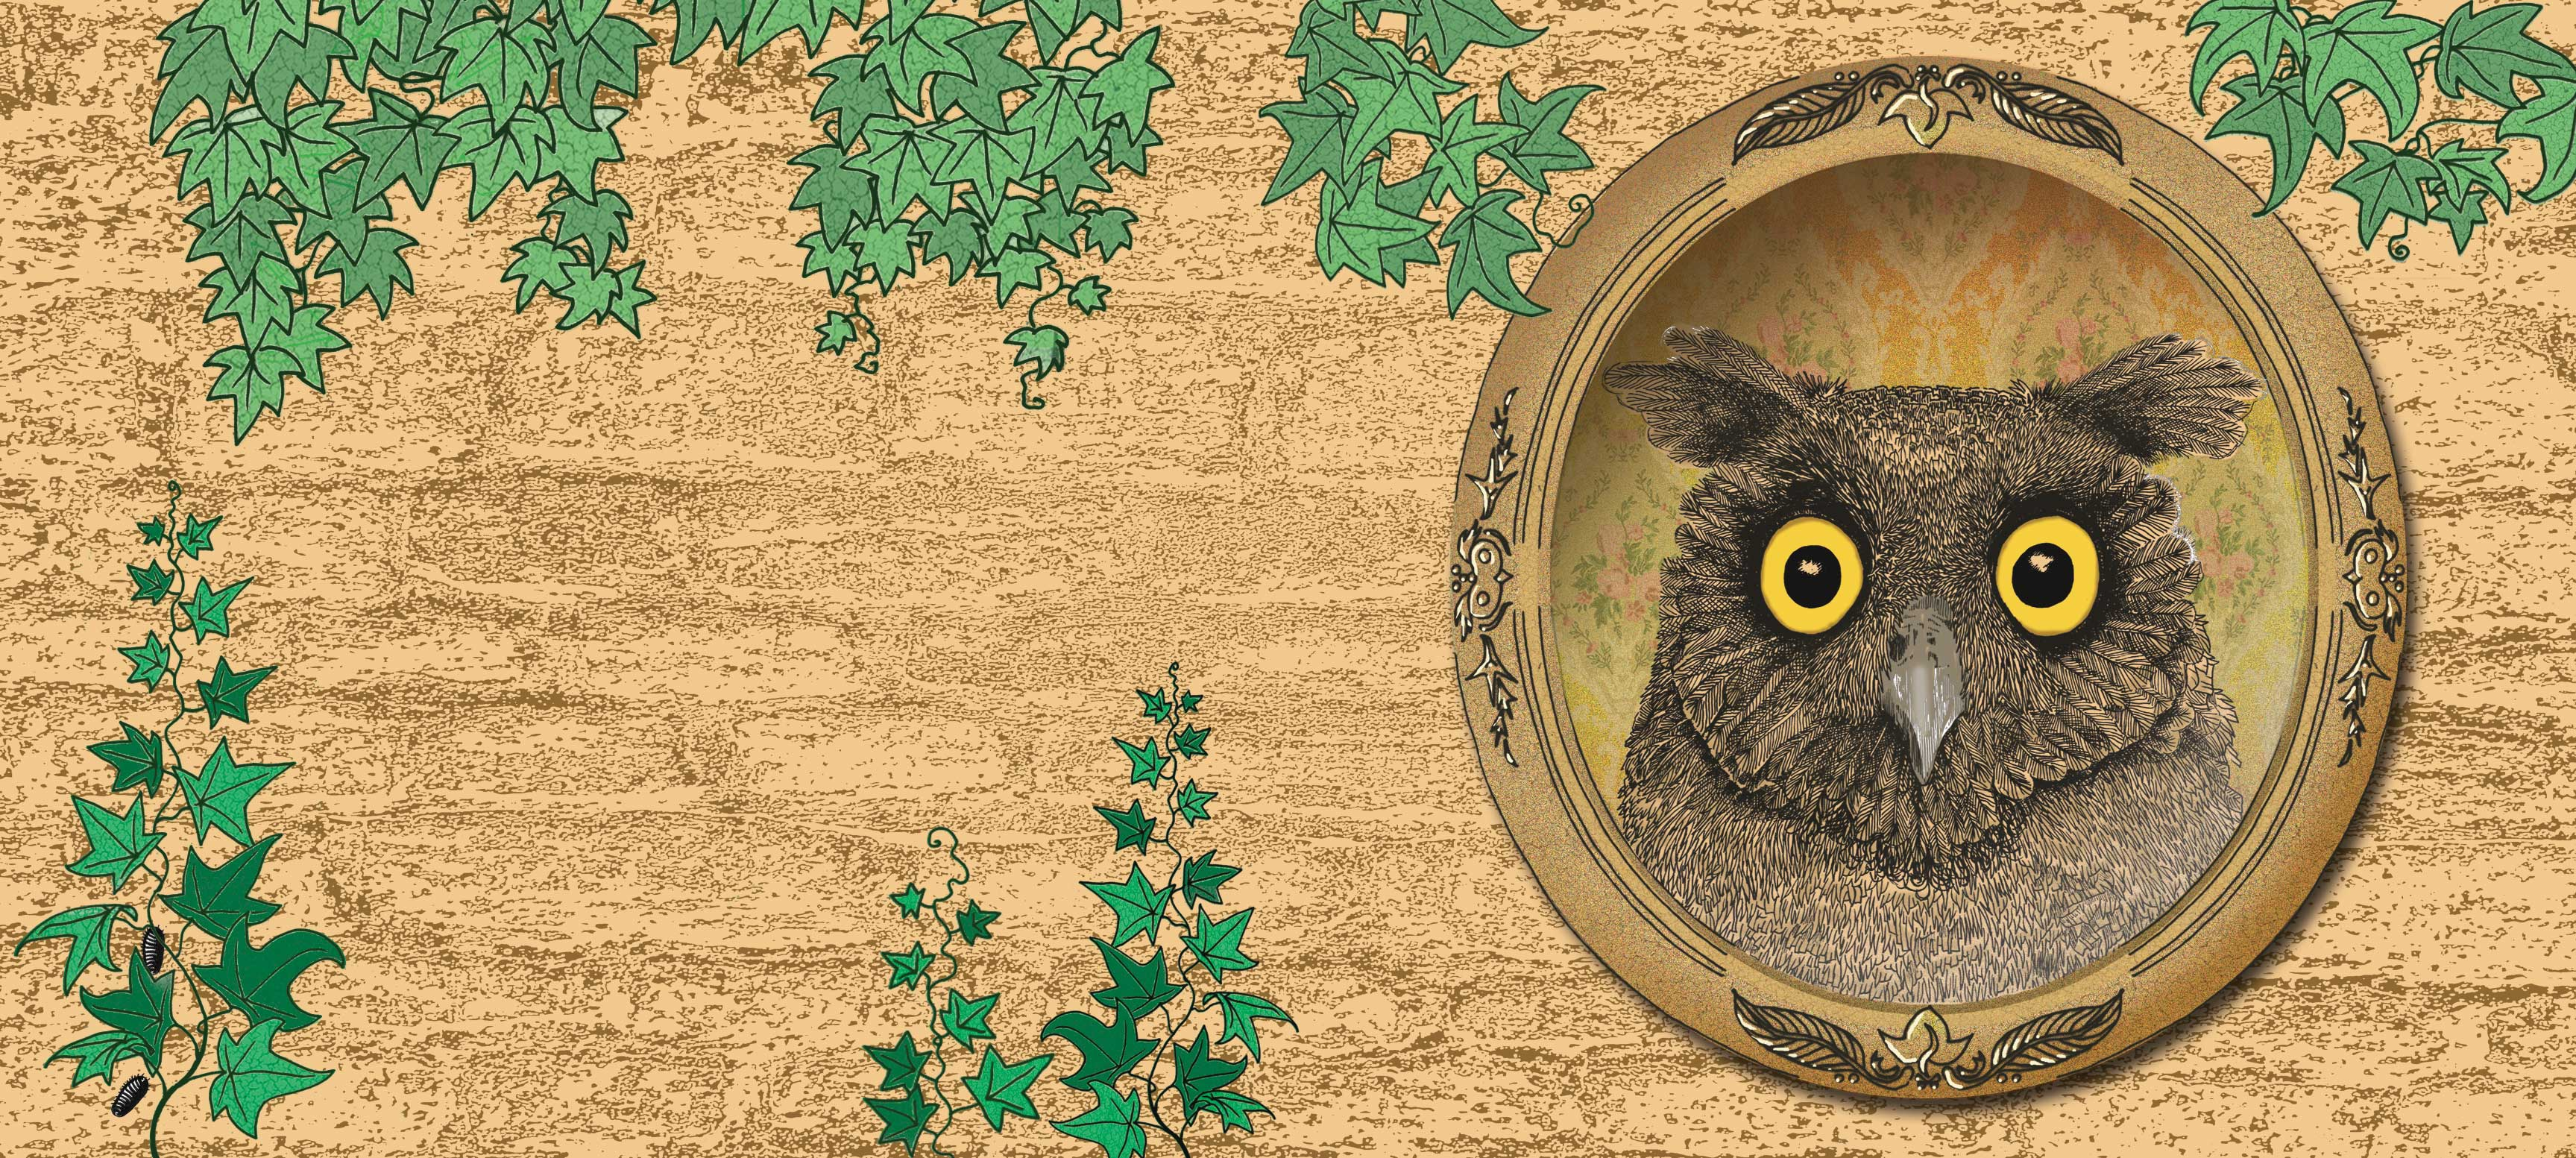 owl surprised in a mirror against a graden wall with vines